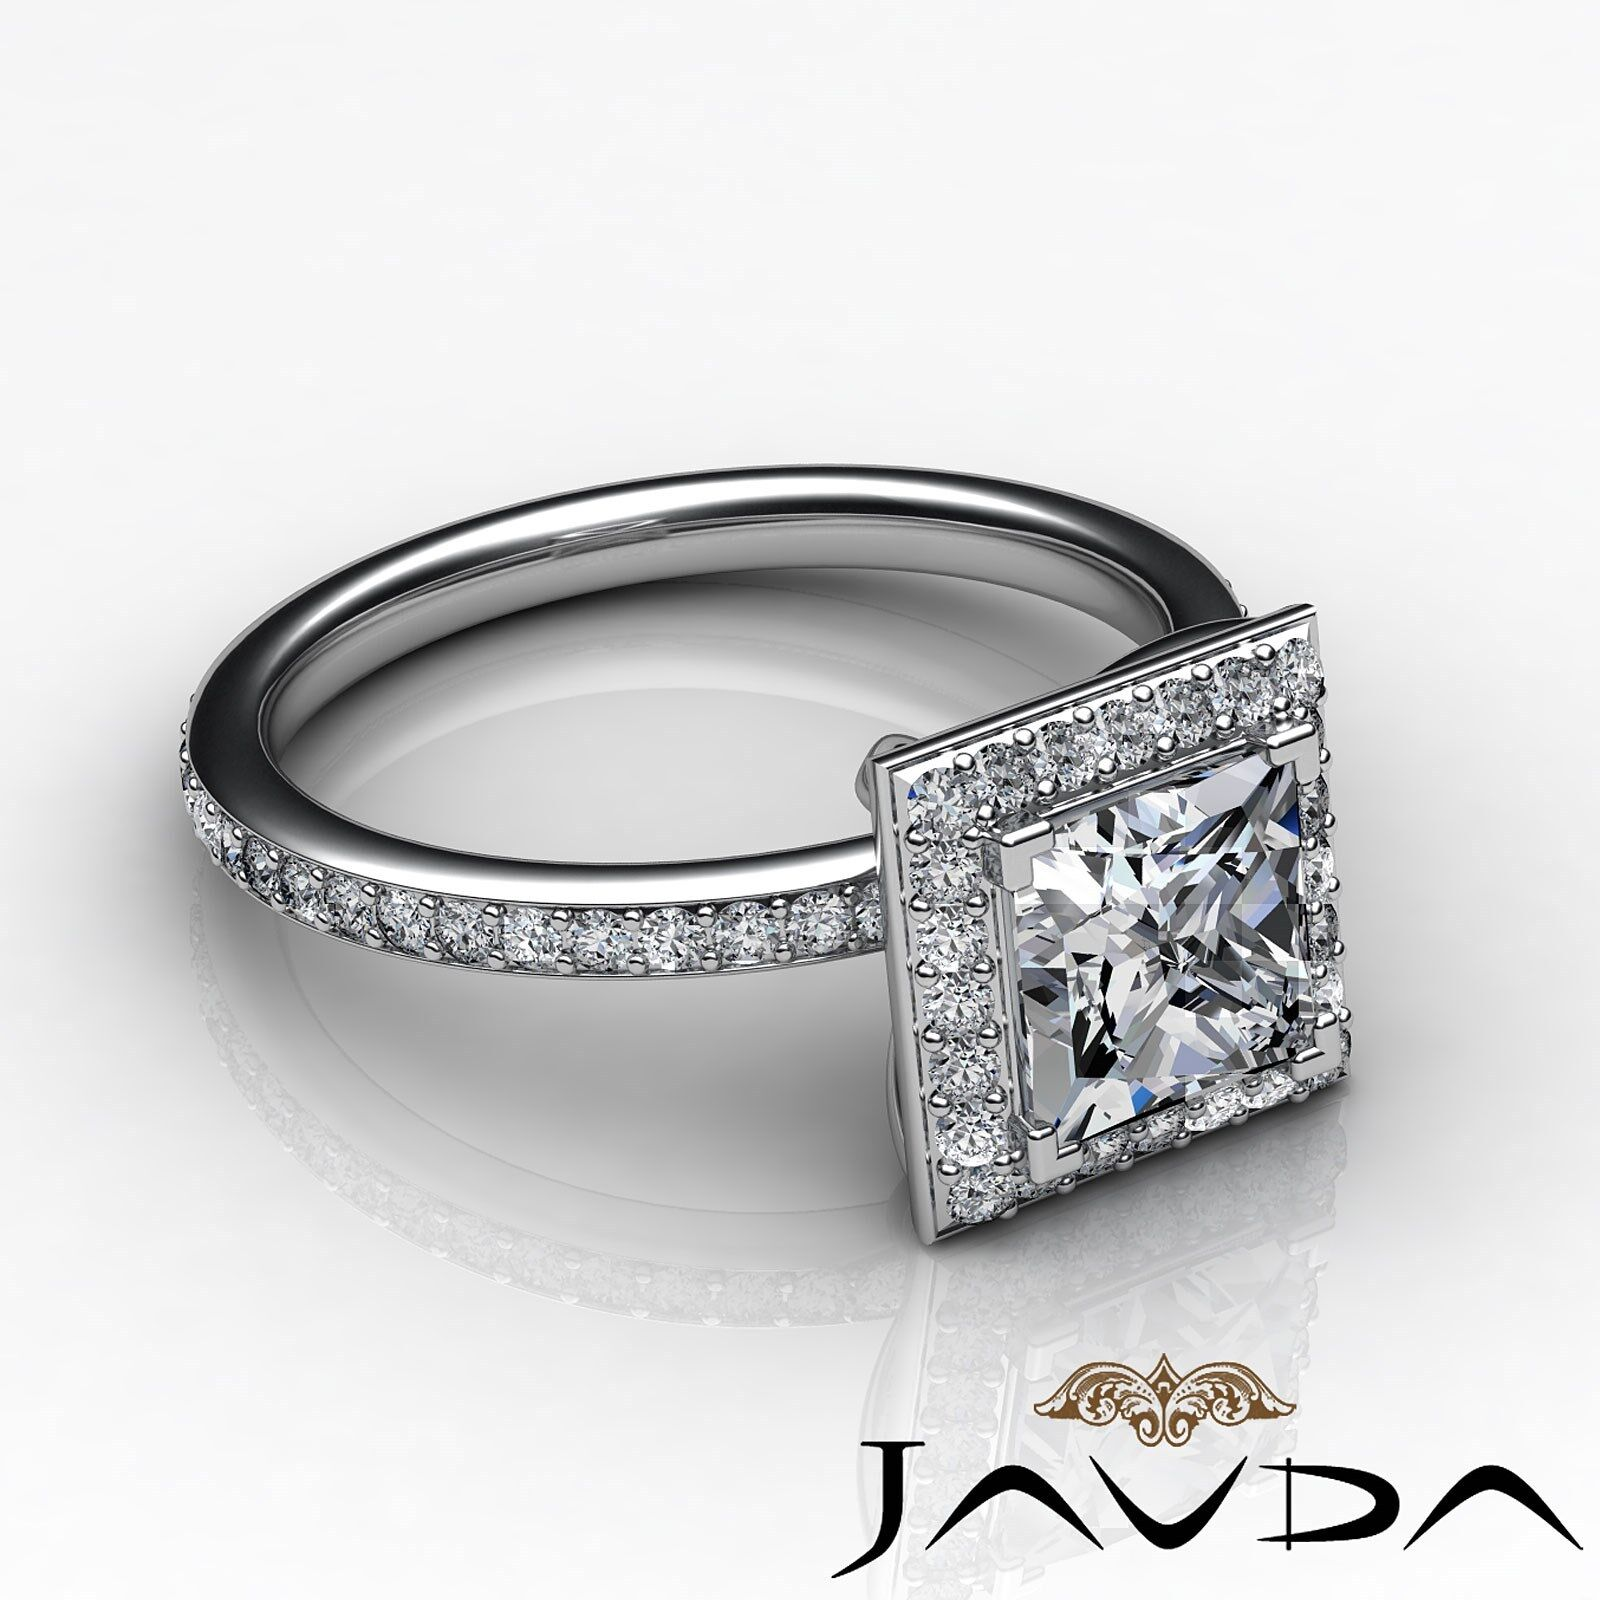 Halo Pave Set Princess Cut Diamond Engagement Ring GIA G Color VS1 Clarity 2.5Ct 2